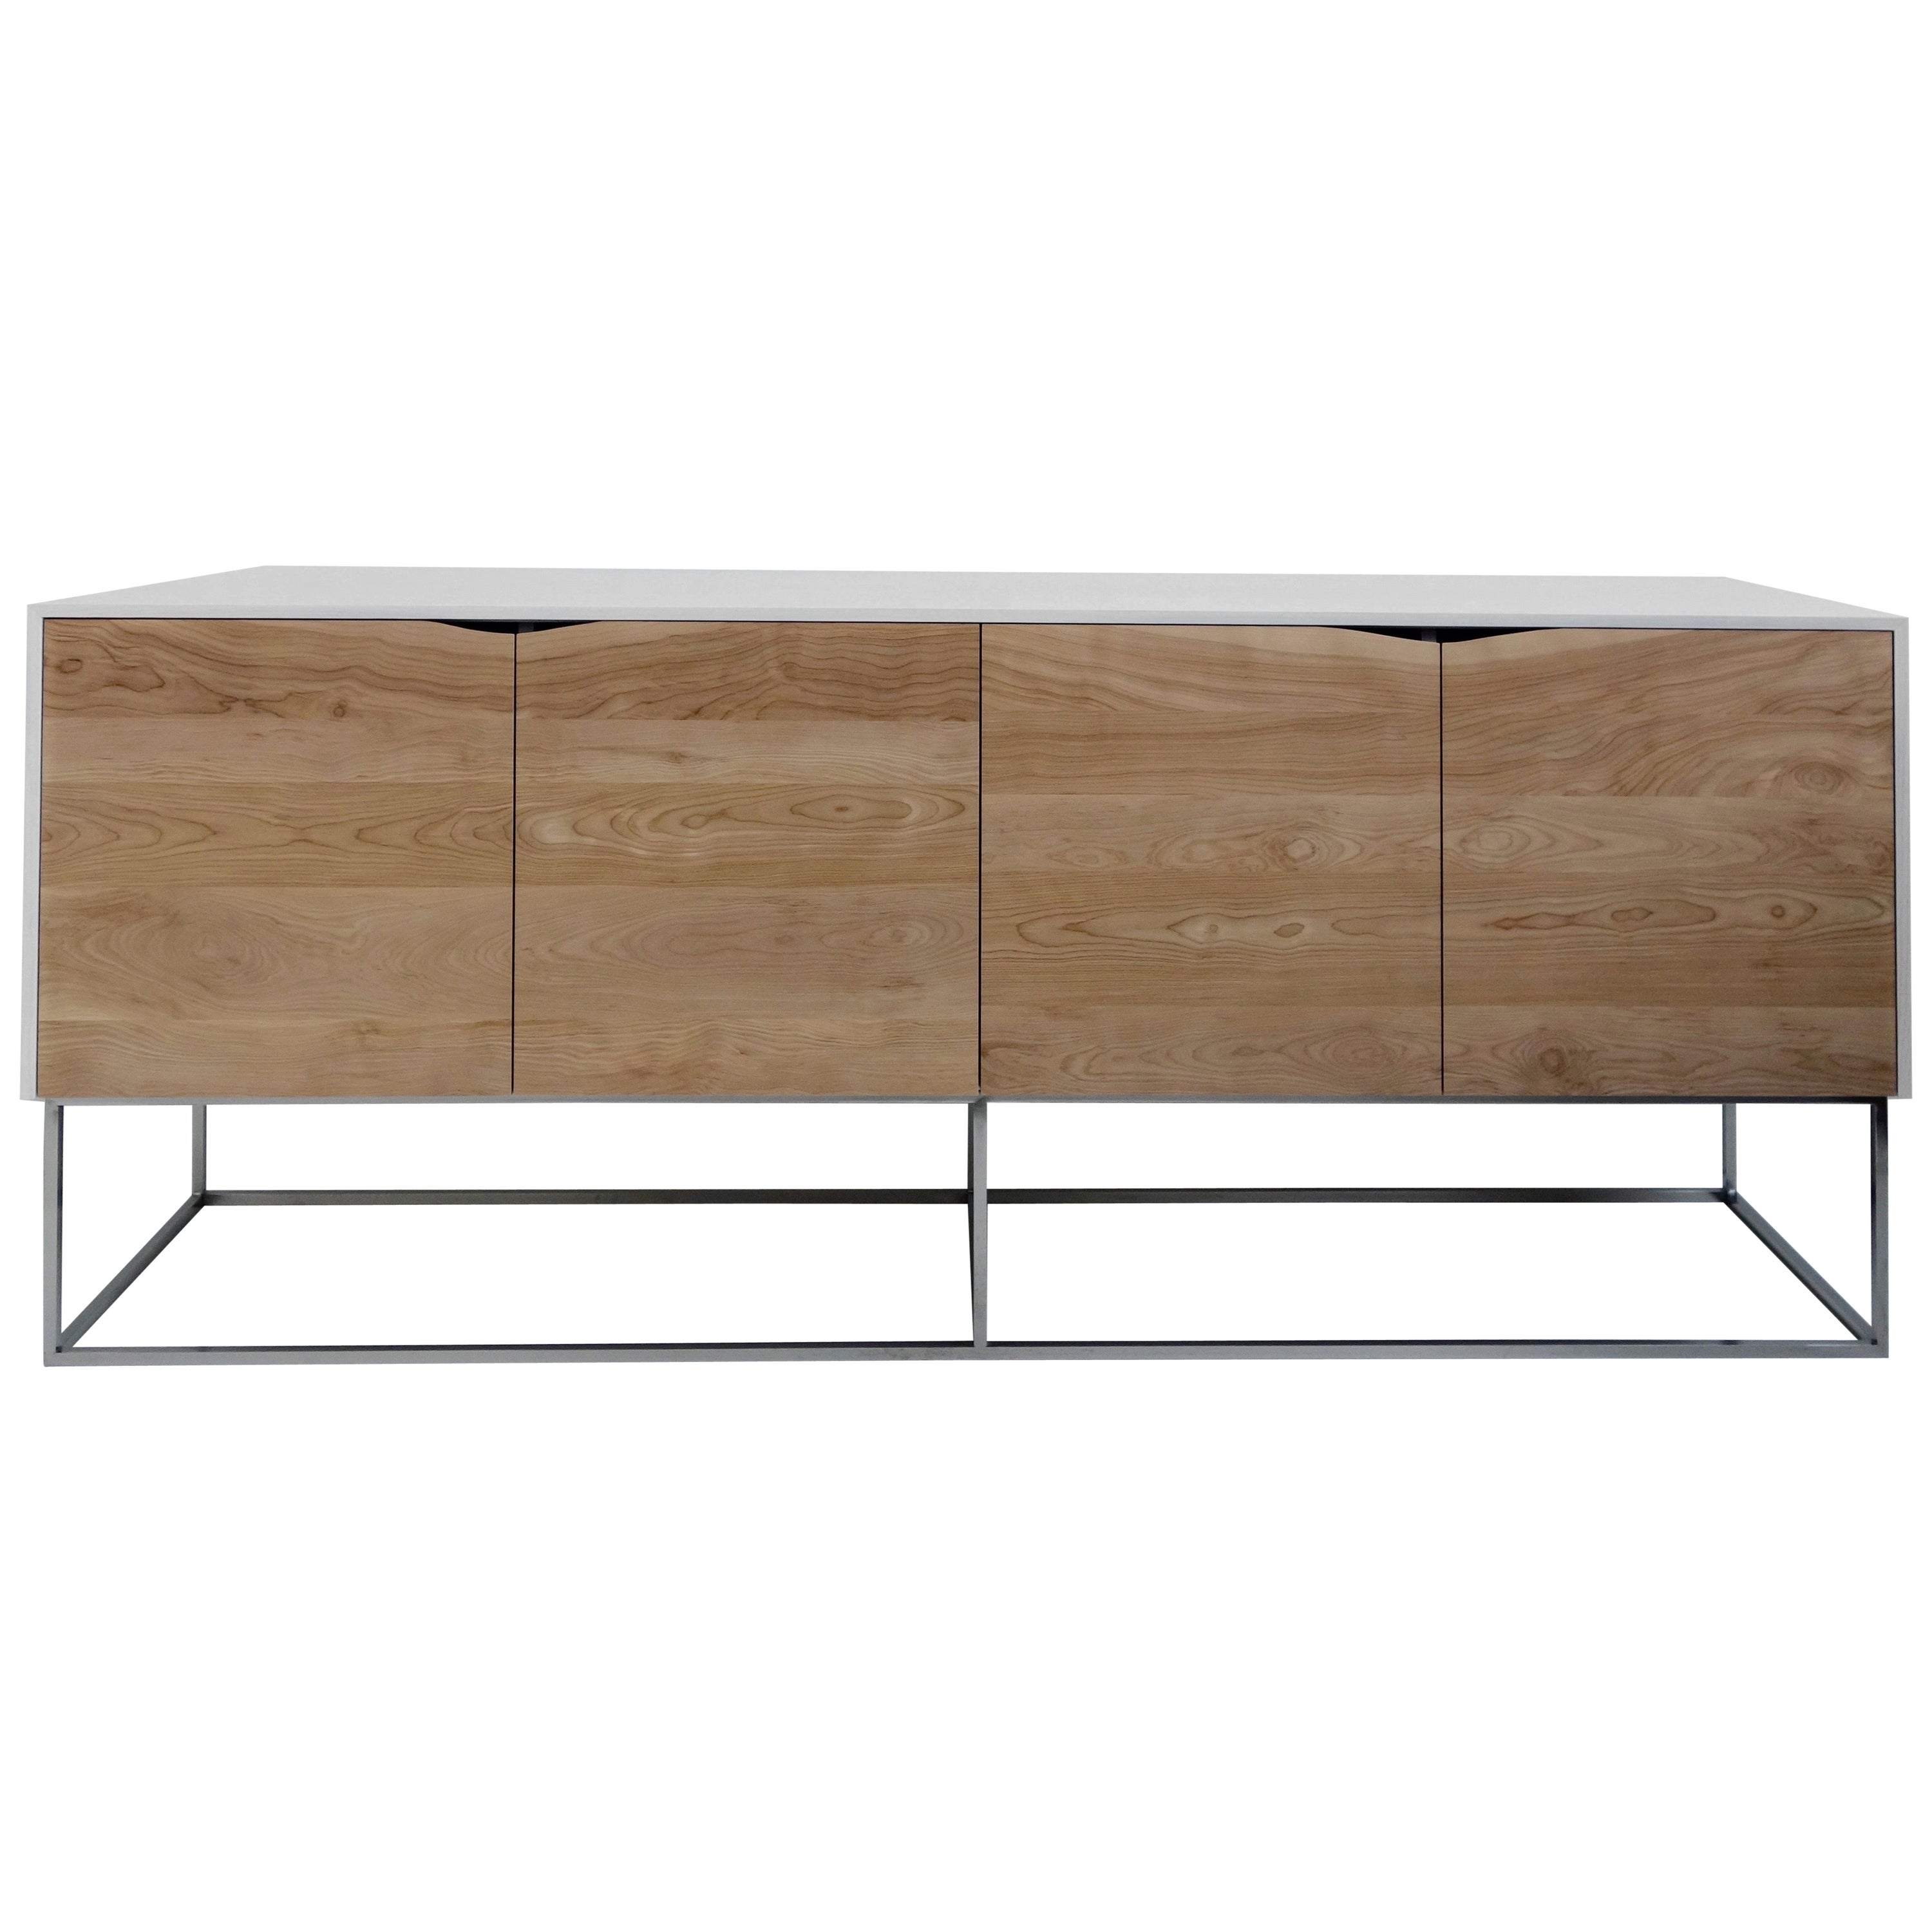 Handcrafted Classic Modern Credenza of Whitened Ash & Birch with Chrome Base